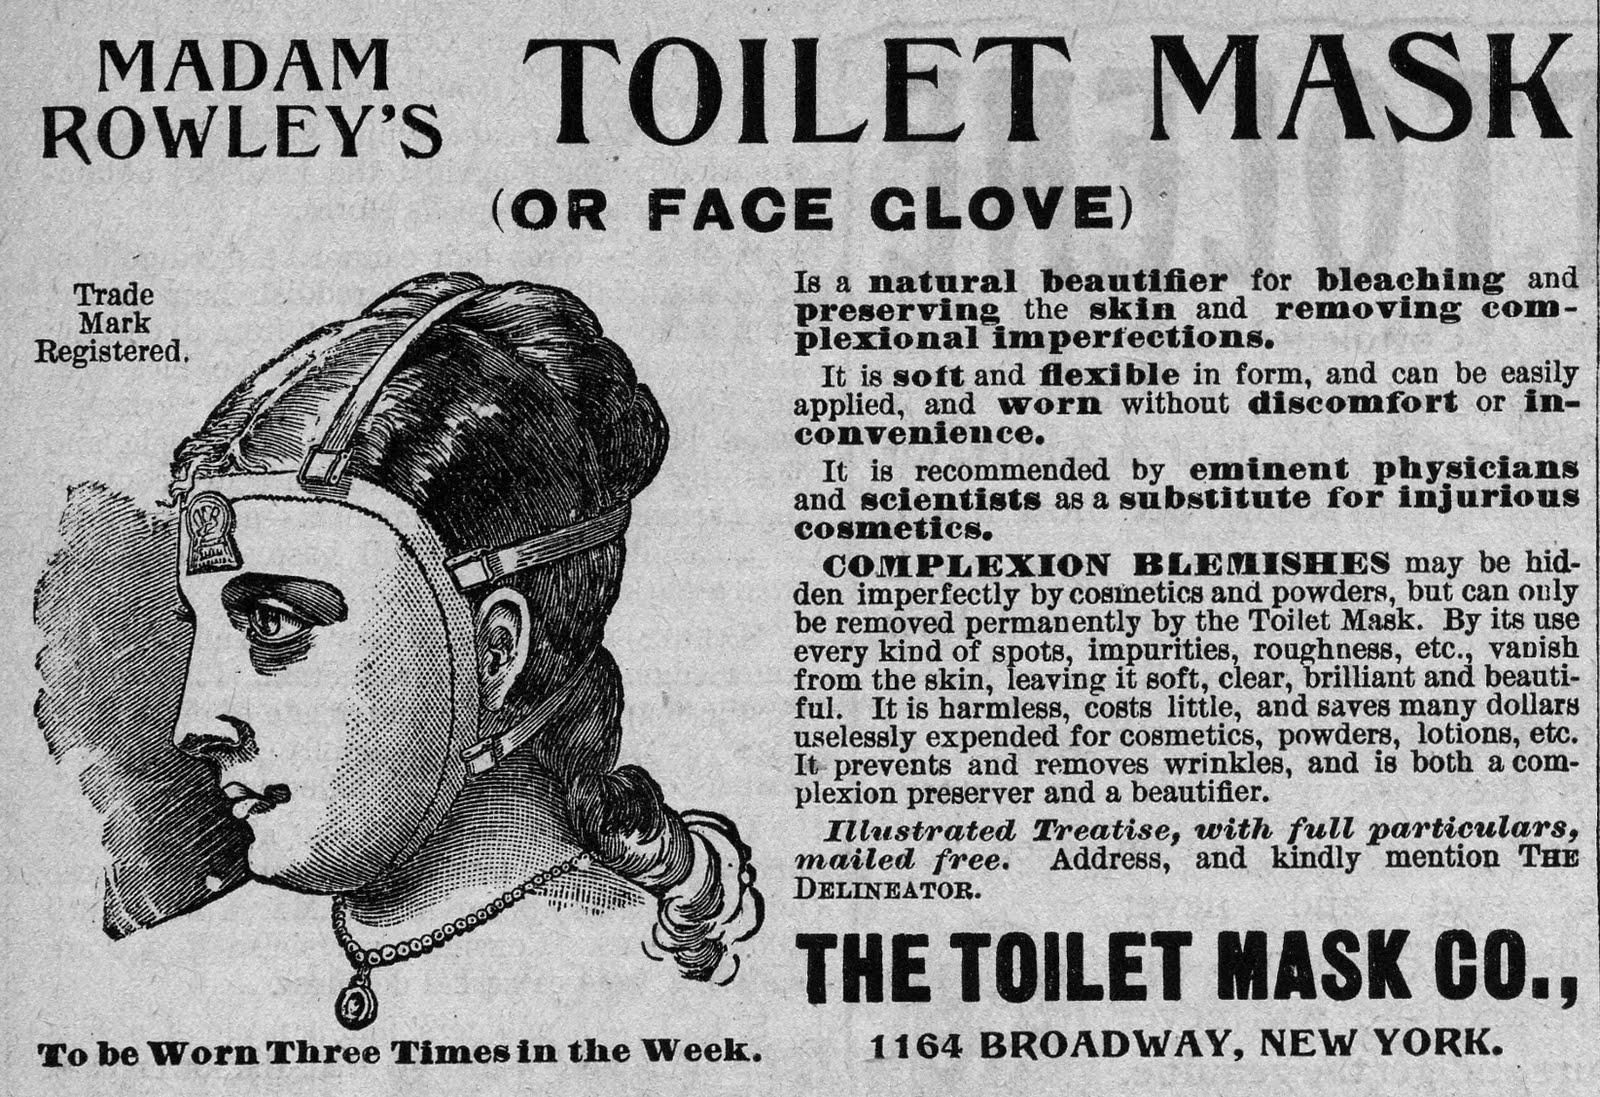 Advertisement for Madame Rowley's Toilet Mask